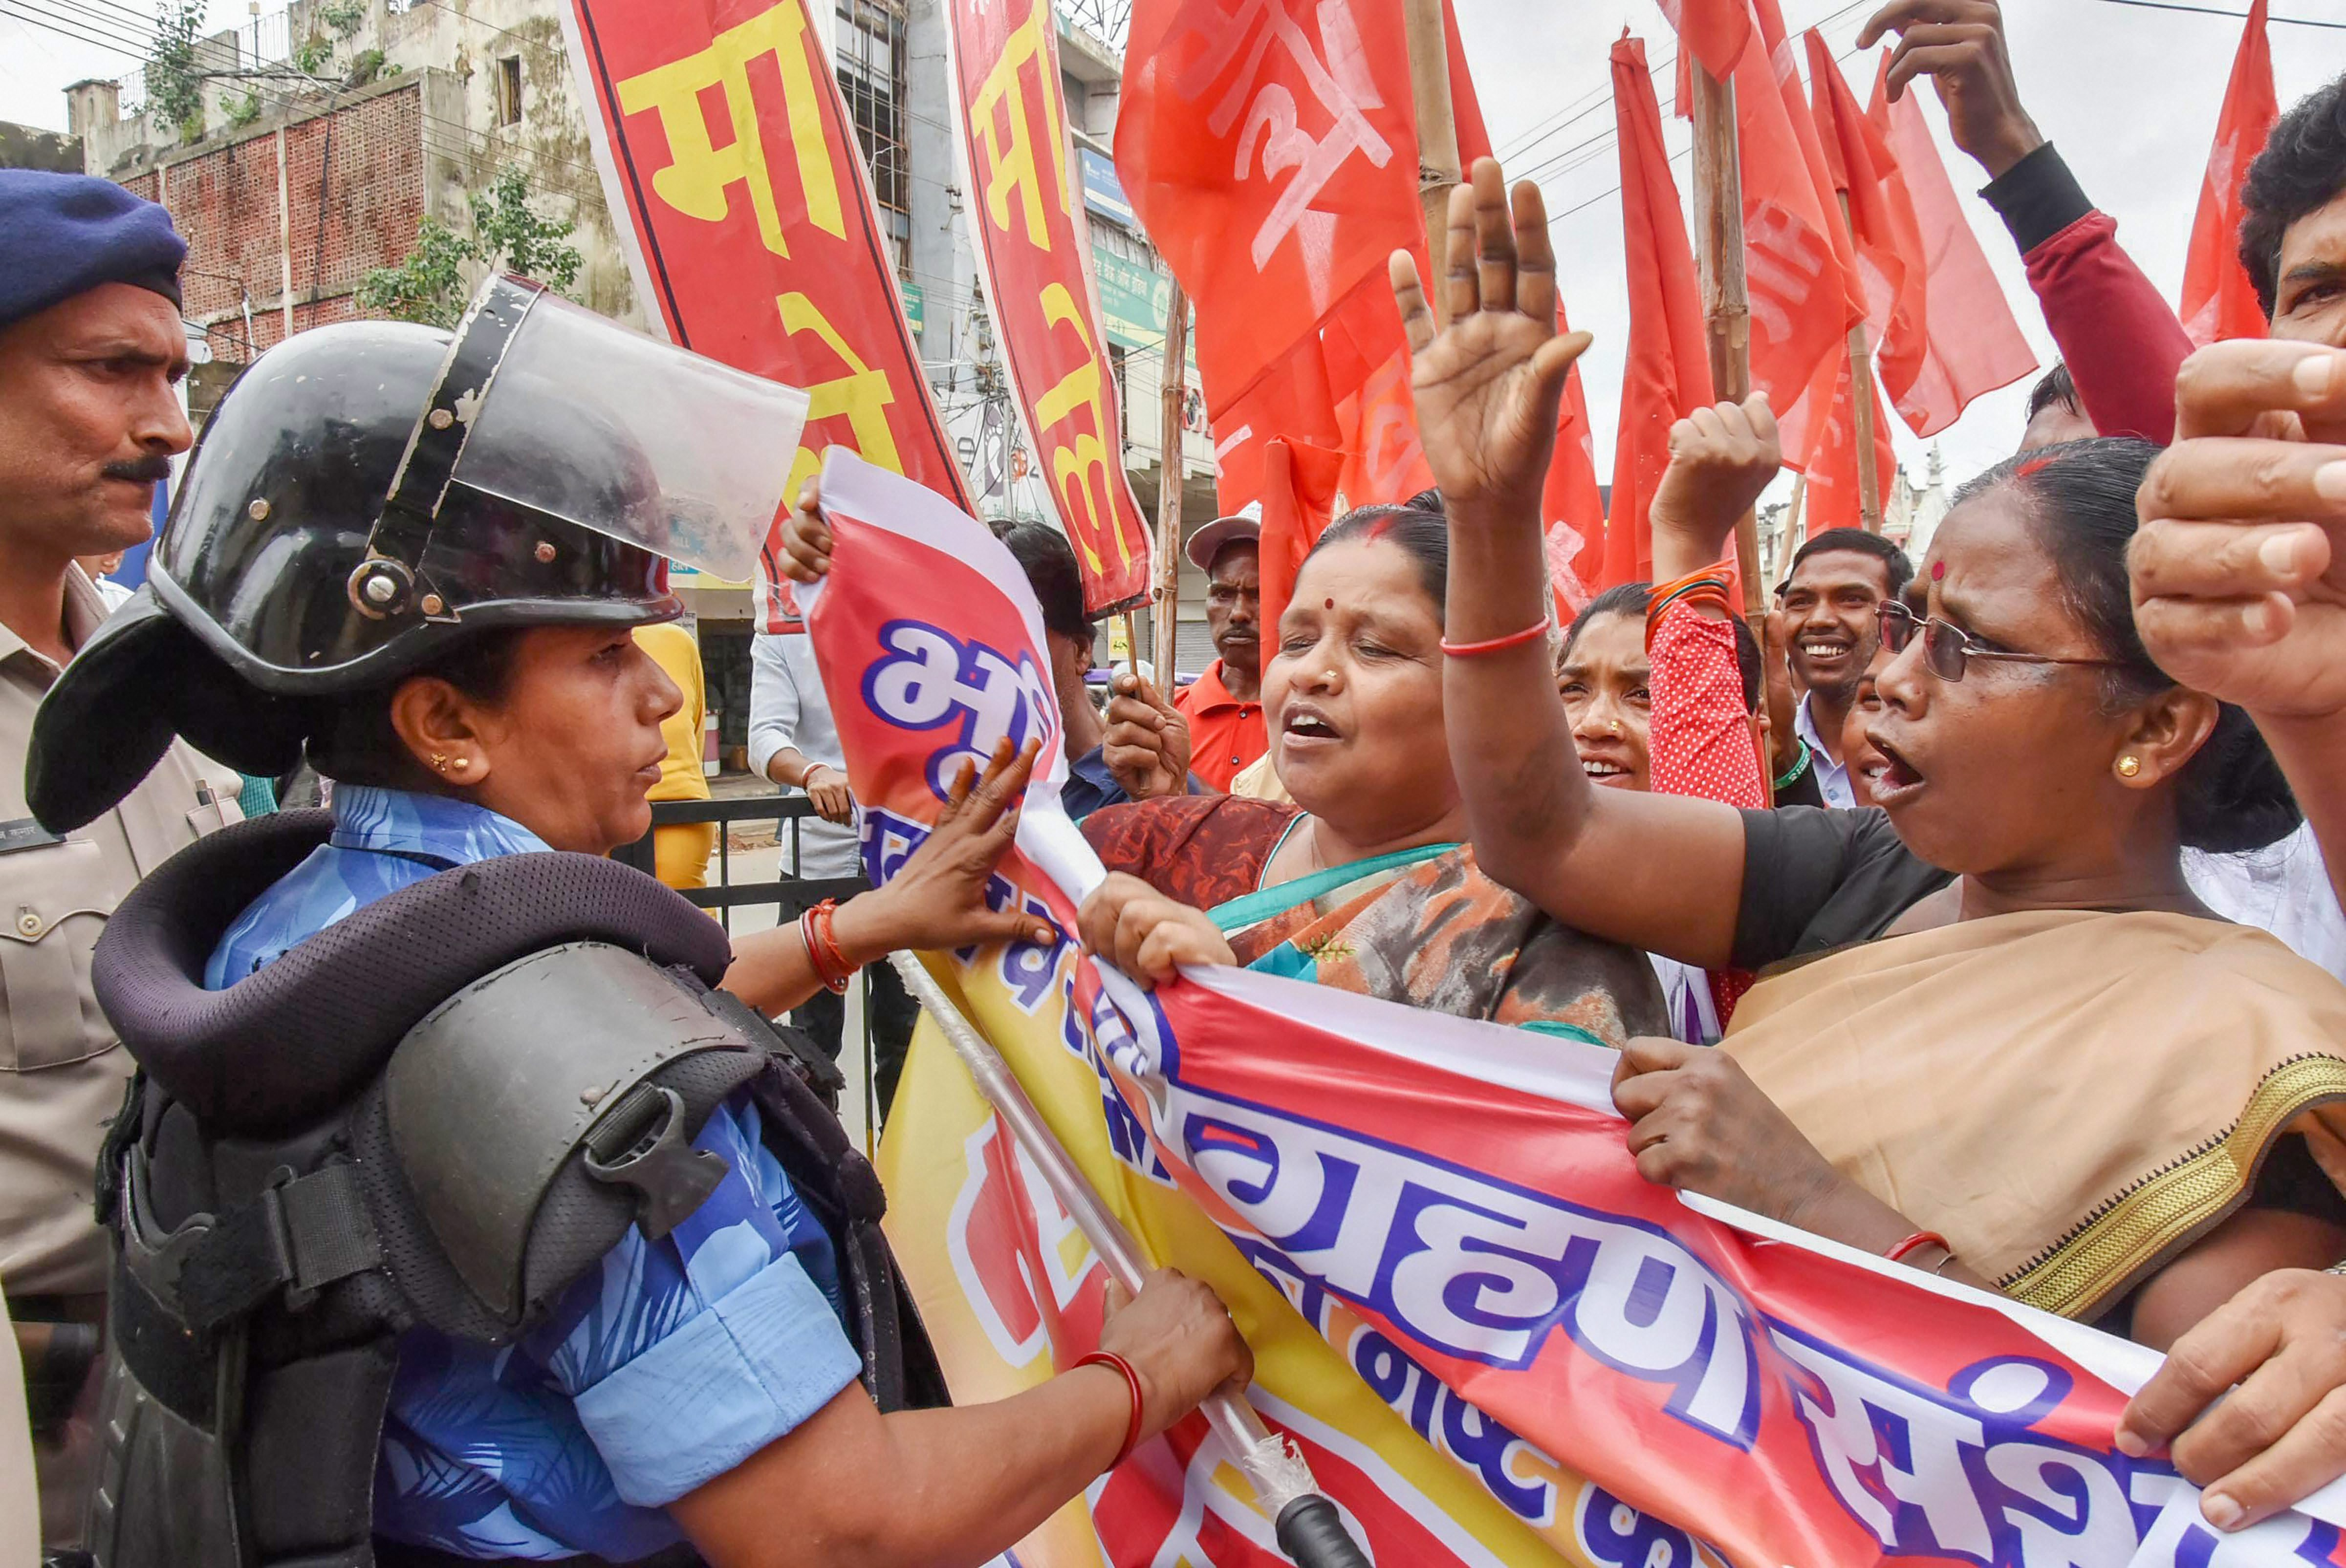 Jharkhand Citizens: People's Rights Under Attack; Want New Government to Uphold Them